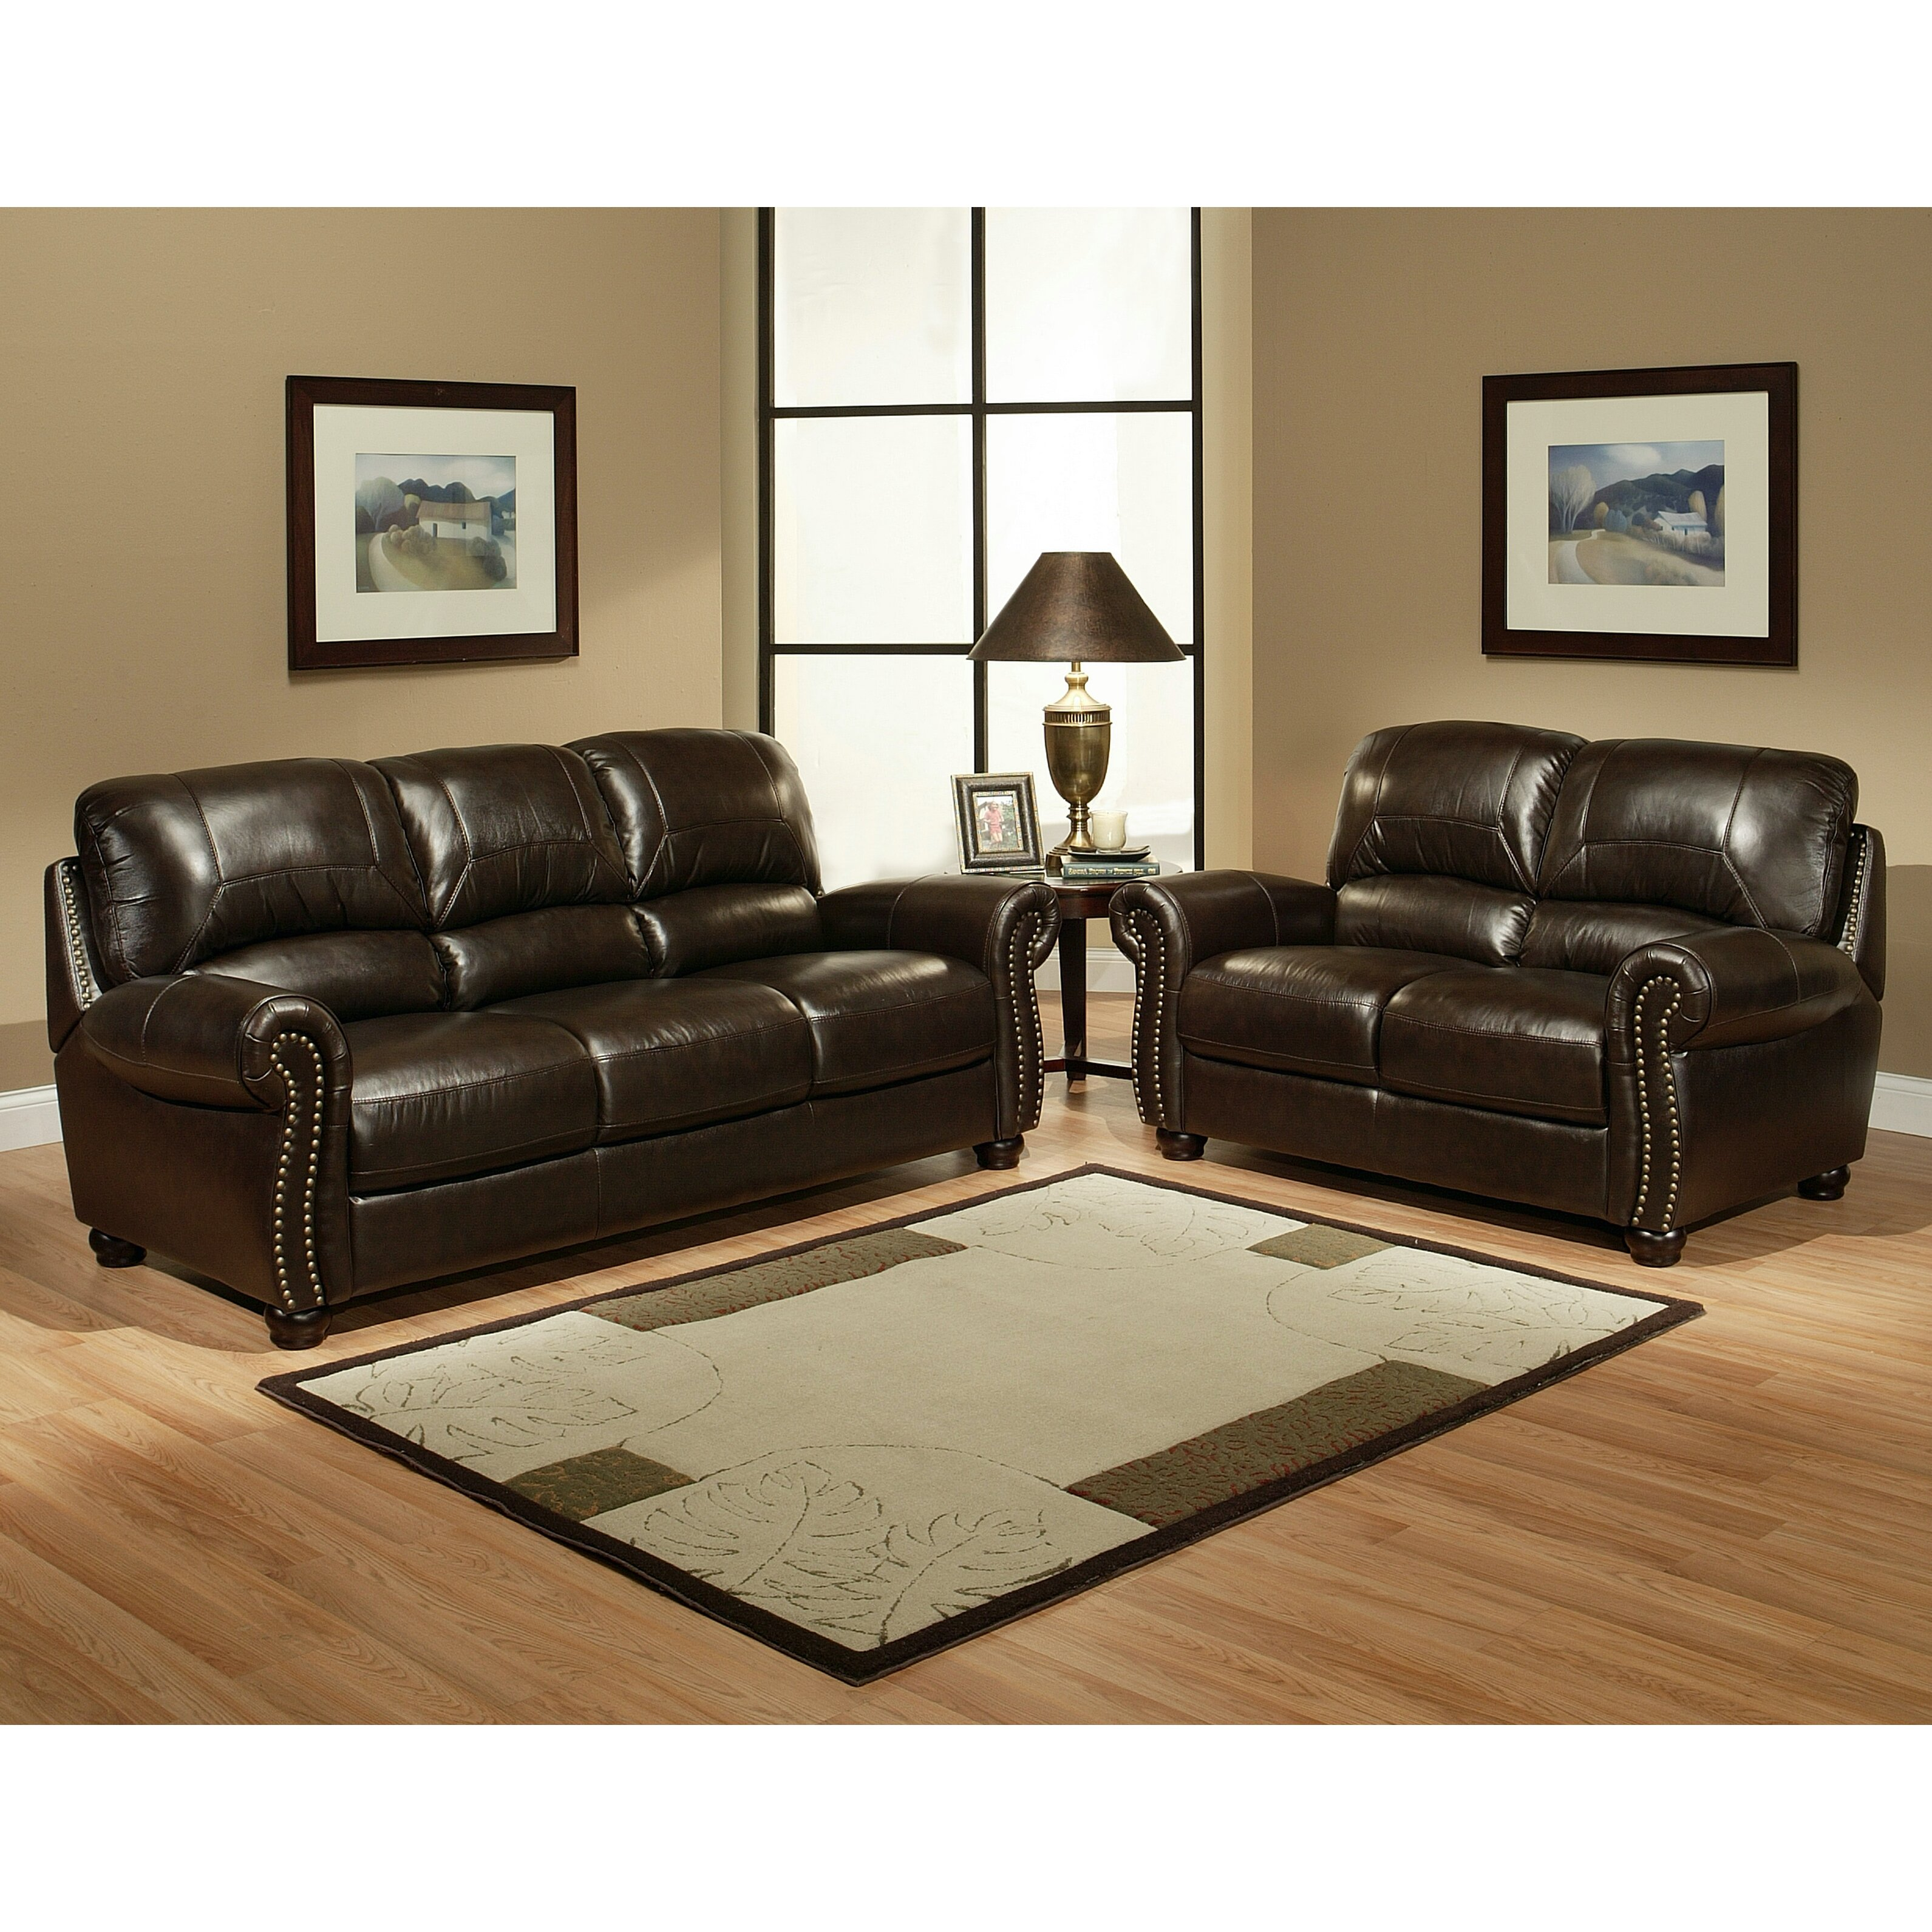 Abbyson Living Broadway Living Room Collection Reviews Wayfair